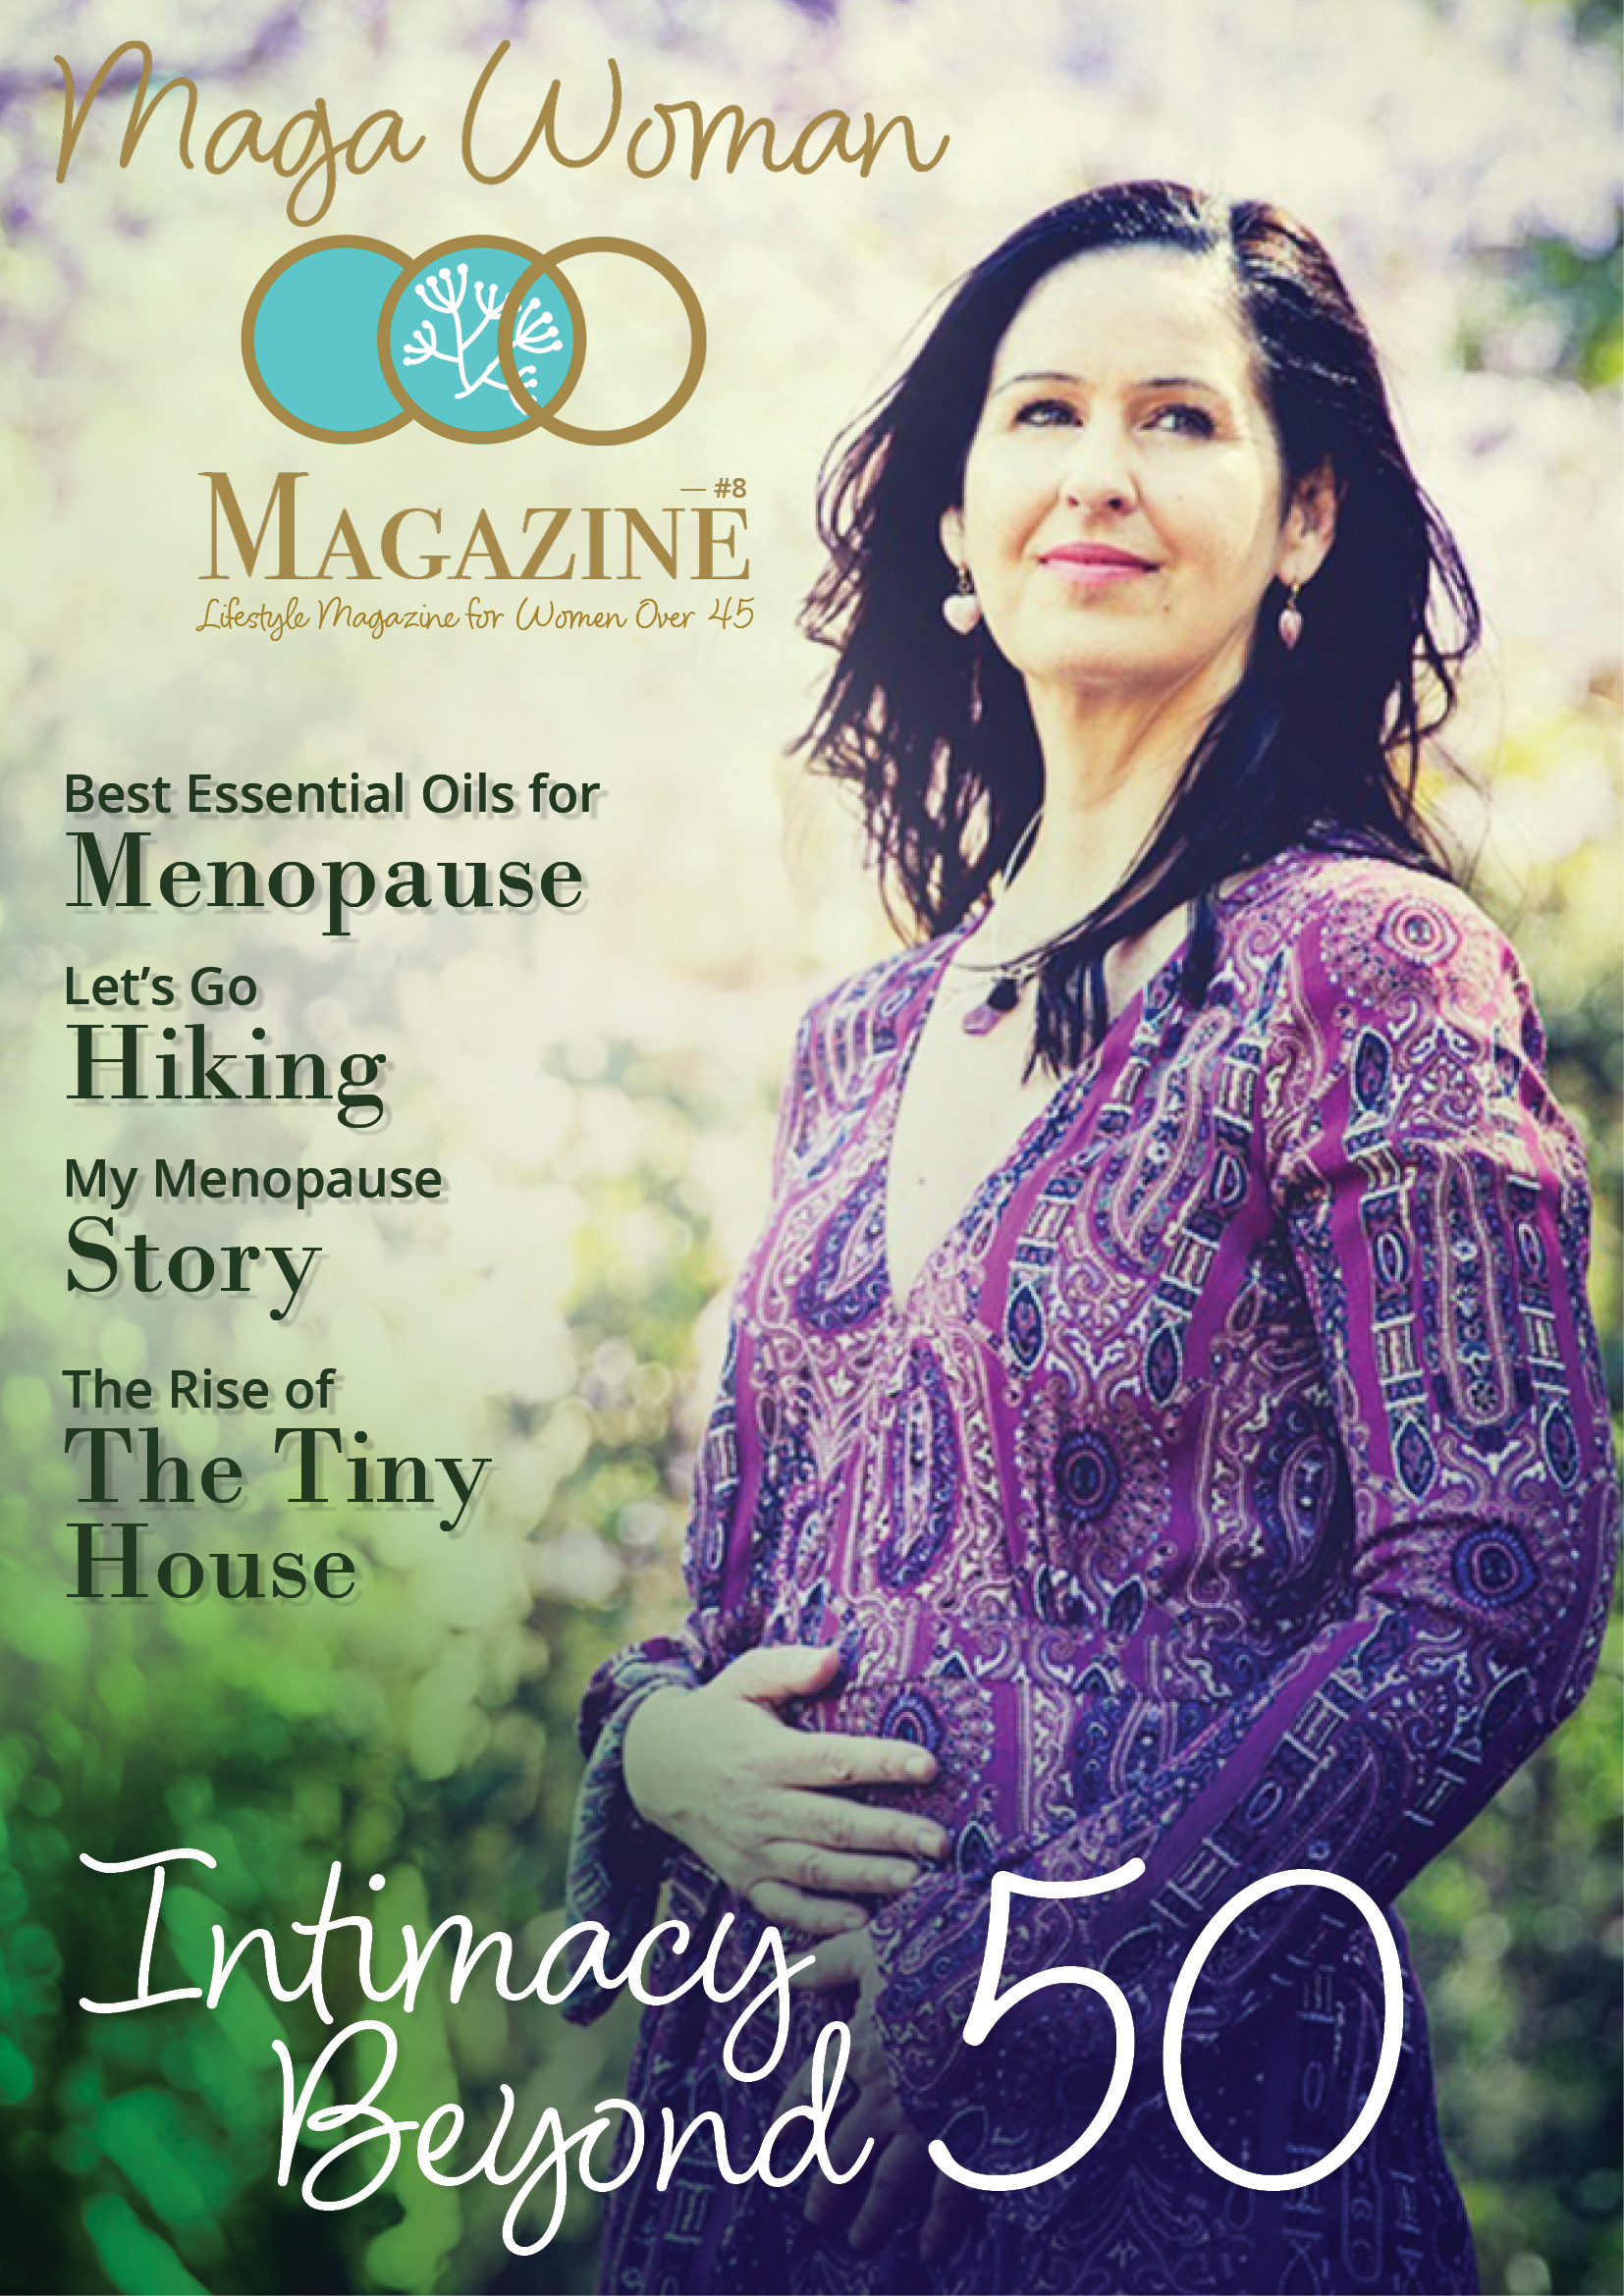 Maga Woman Magazine Issue 8